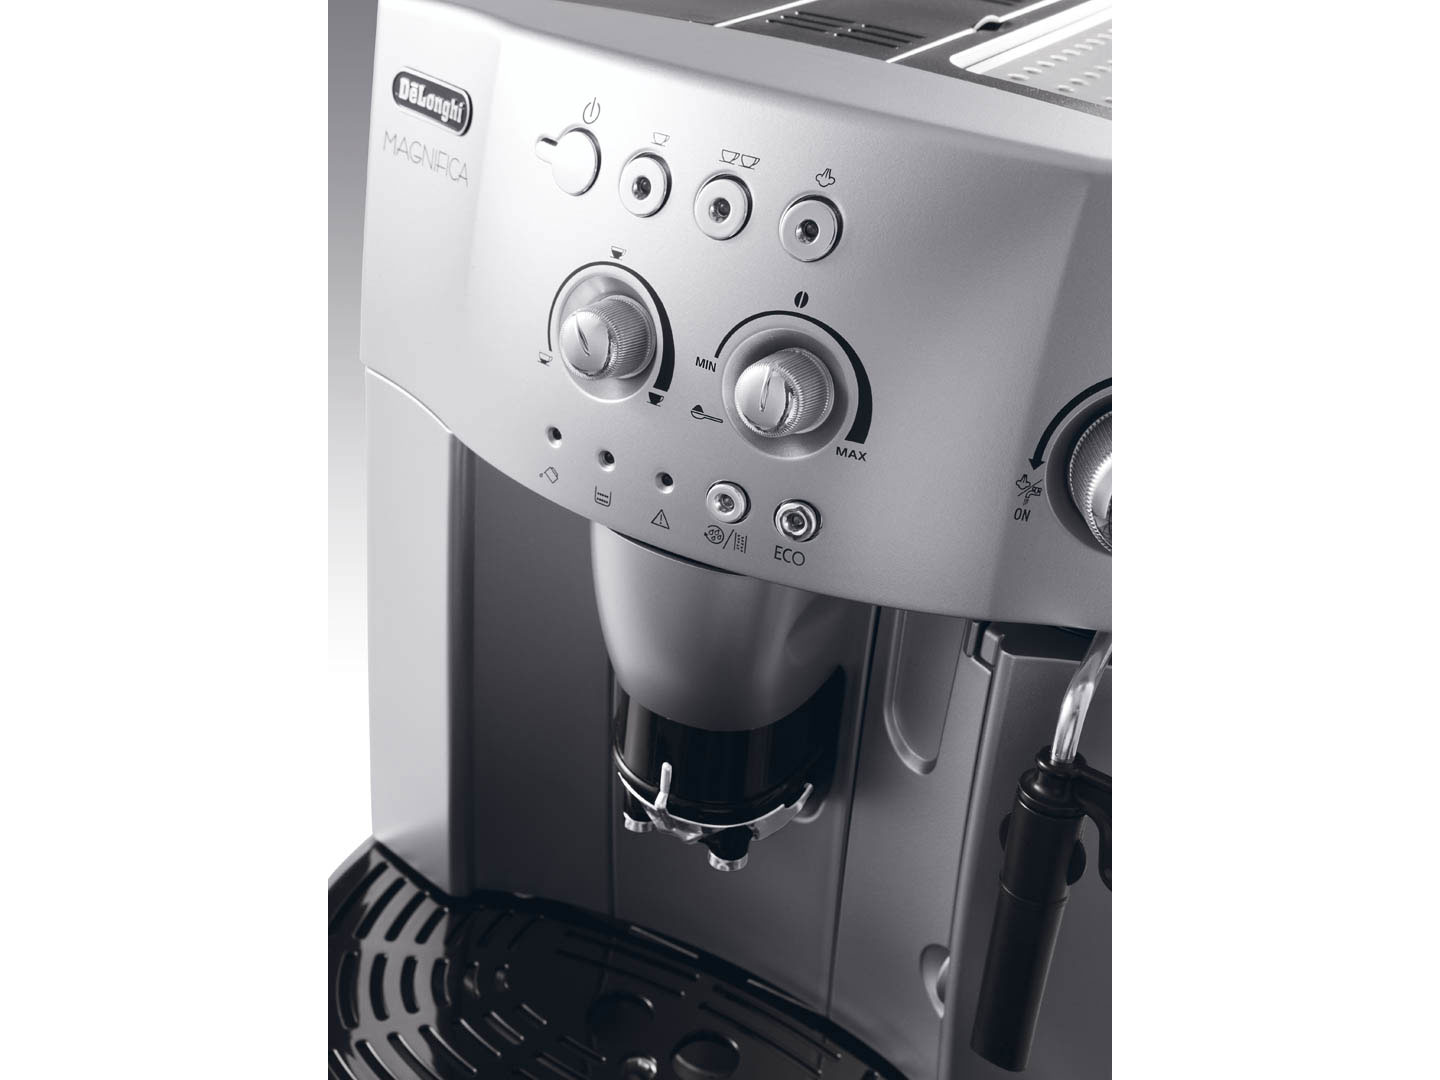 DeLonghi Magnifica ESAM 4200.S Small household appliances Appliances Online shop BM.lv